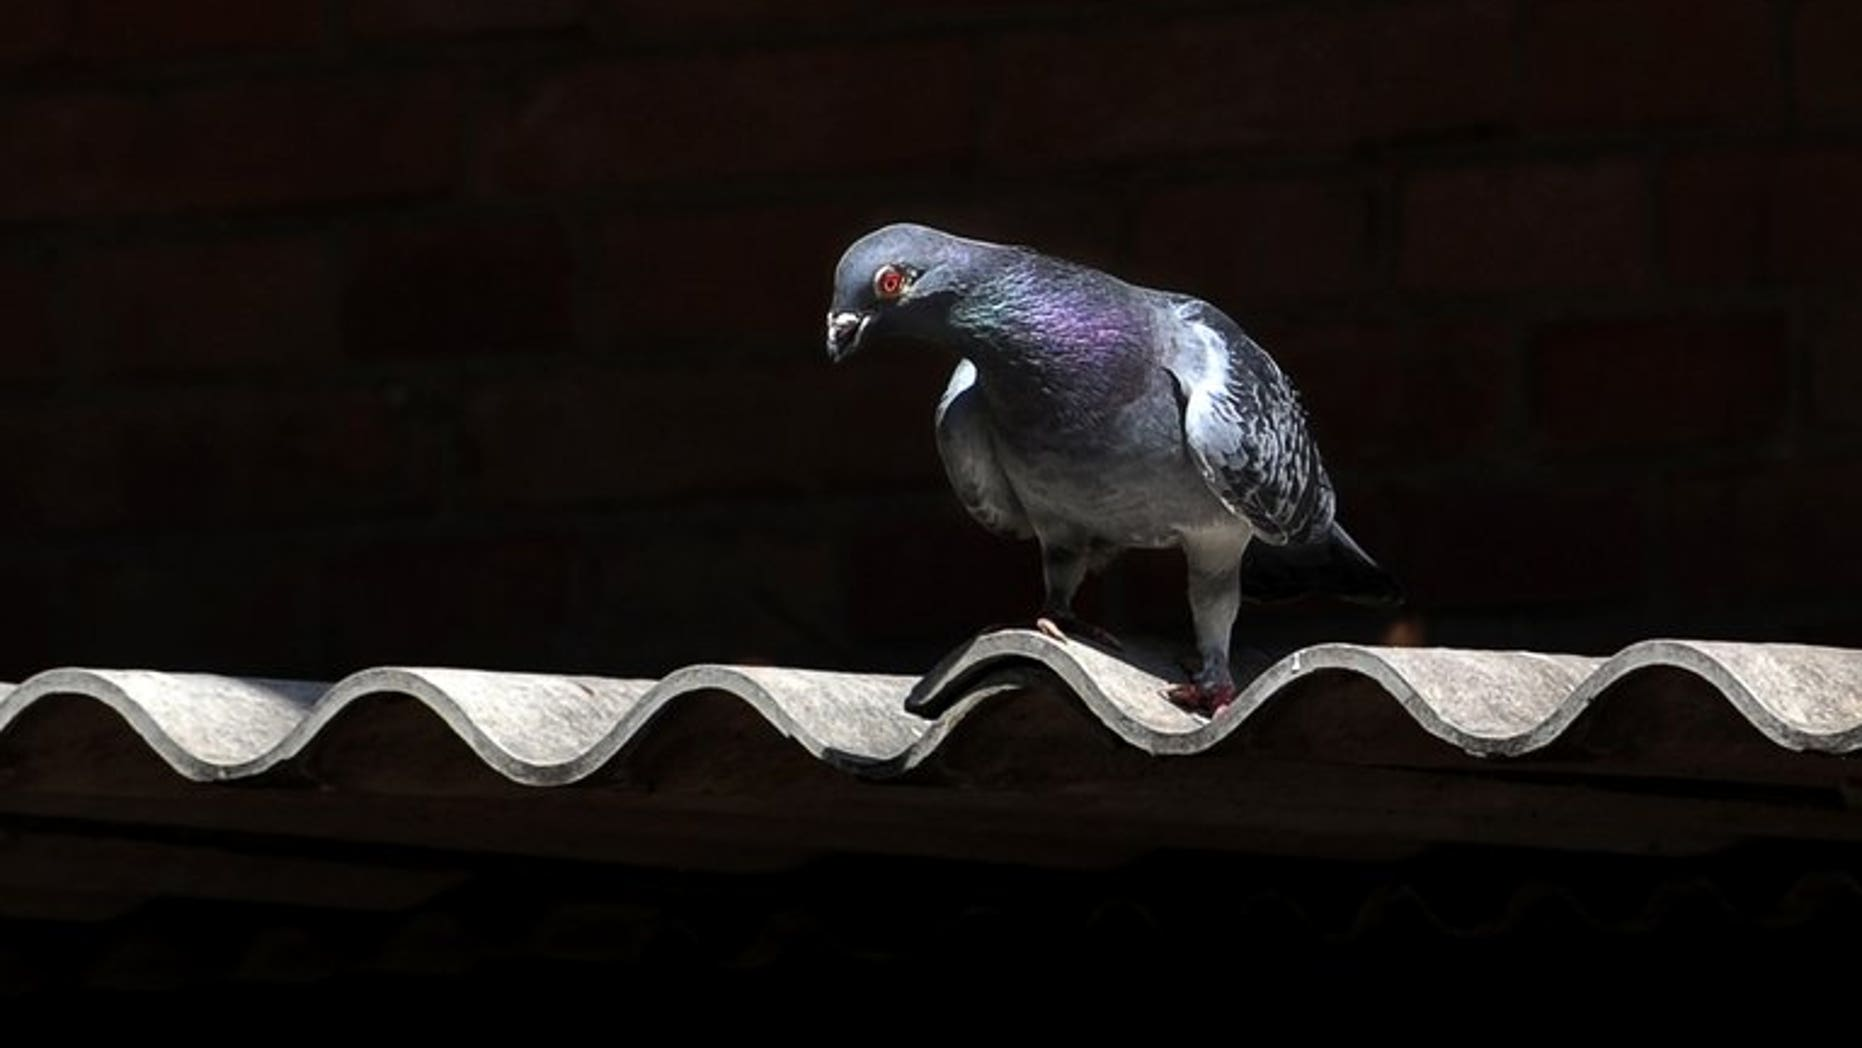 A plucky pigeon that flew across the Pacific Ocean from Japan will be bred by a bird lover in Canada hoping its progeny will be top long distance racers, an animal rescue official said.